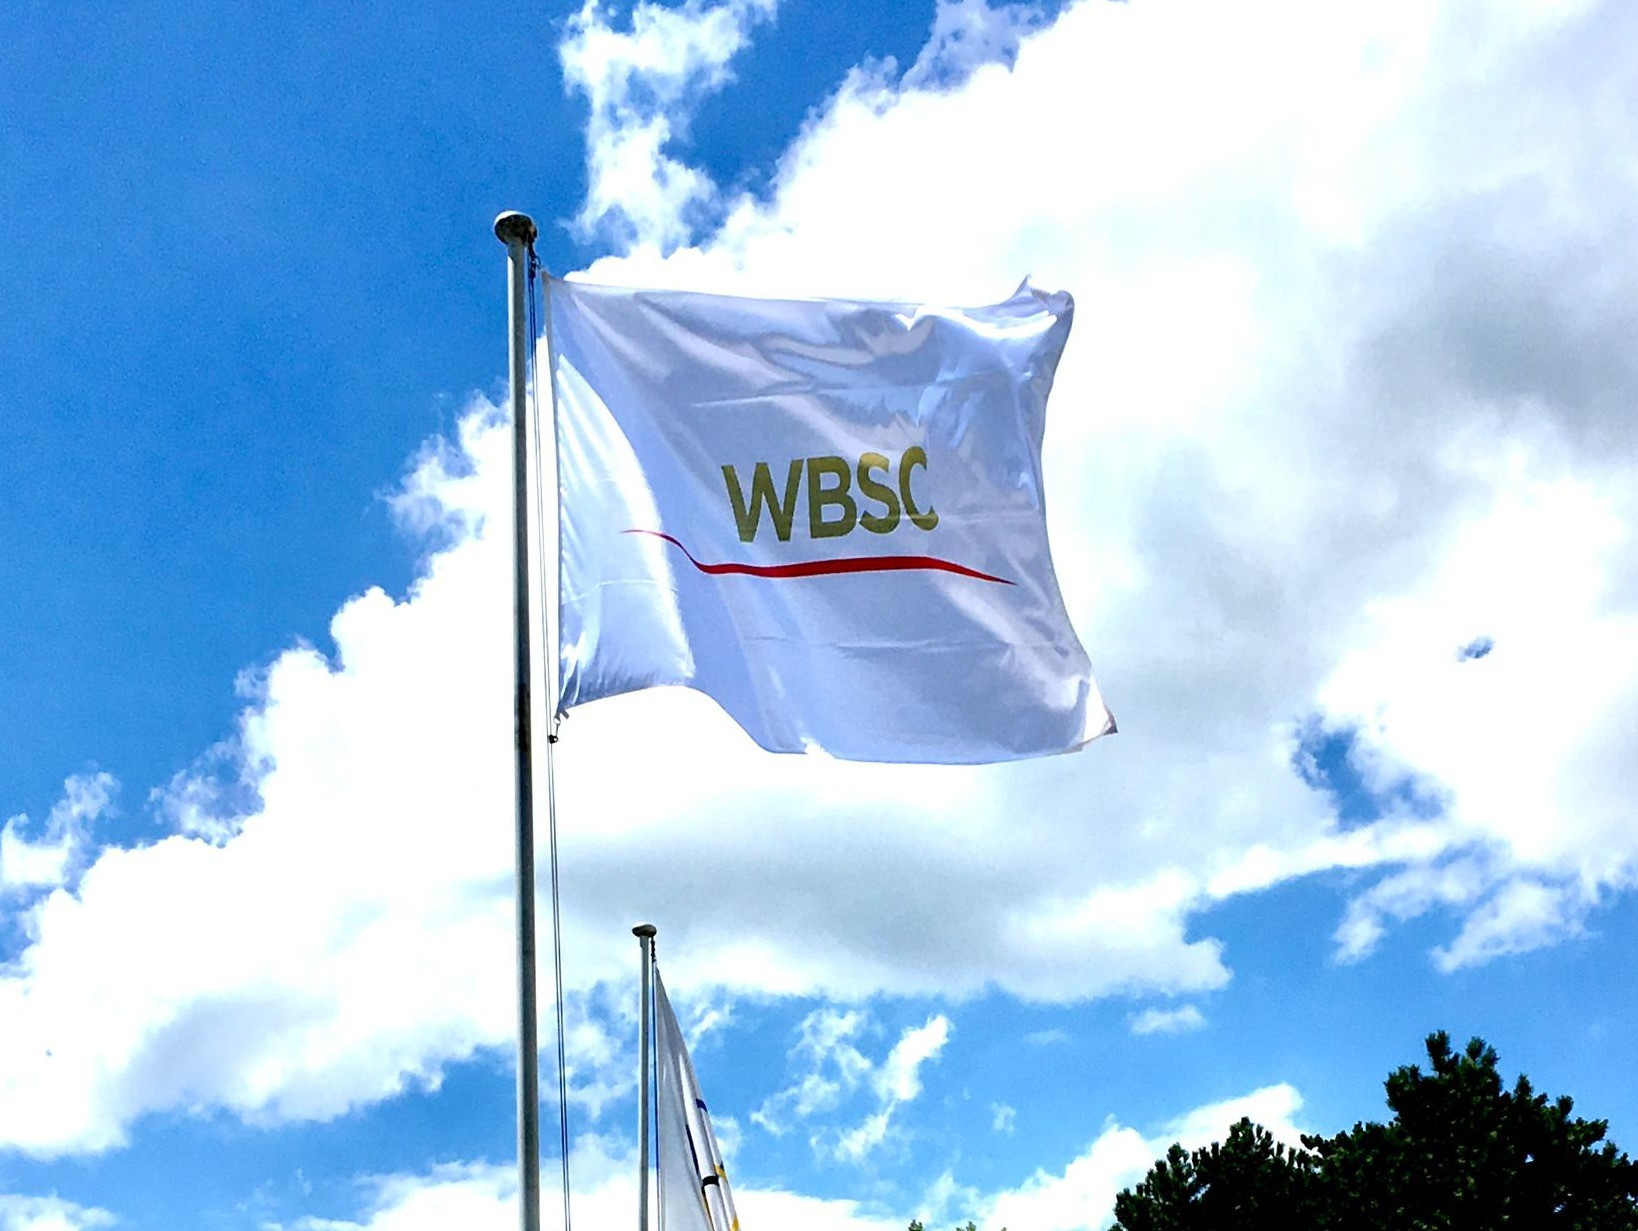 WBSC Presidential Council discuss strategy for during and after coronavirus pandemic